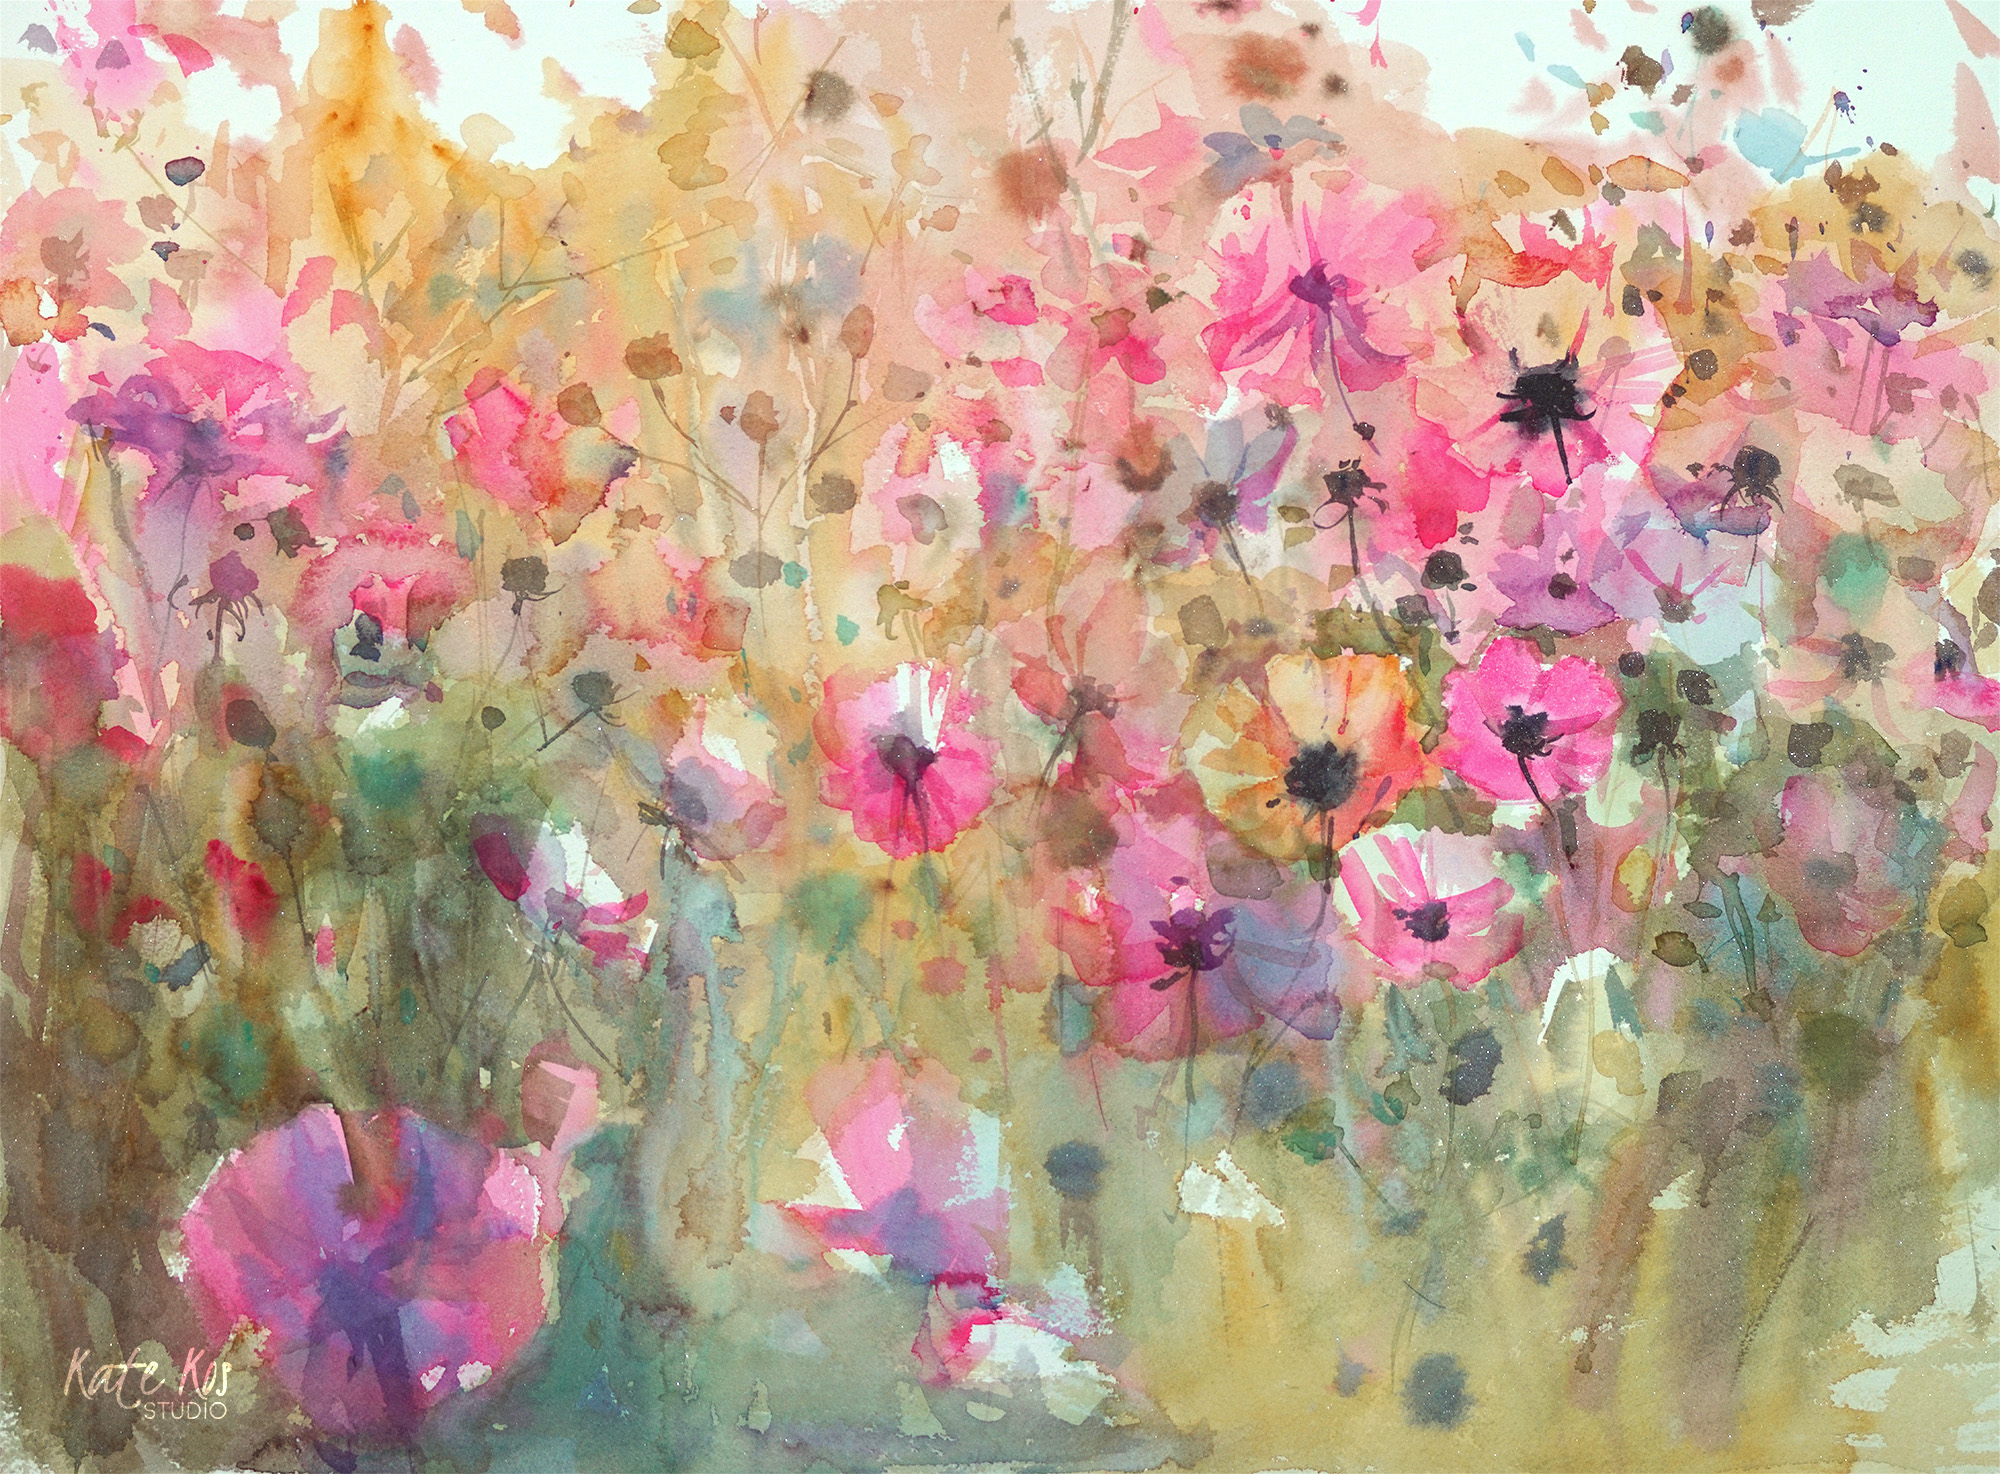 2000x1474 2018 Art Painting Watercolor Floral Cosmos By Kate Kos